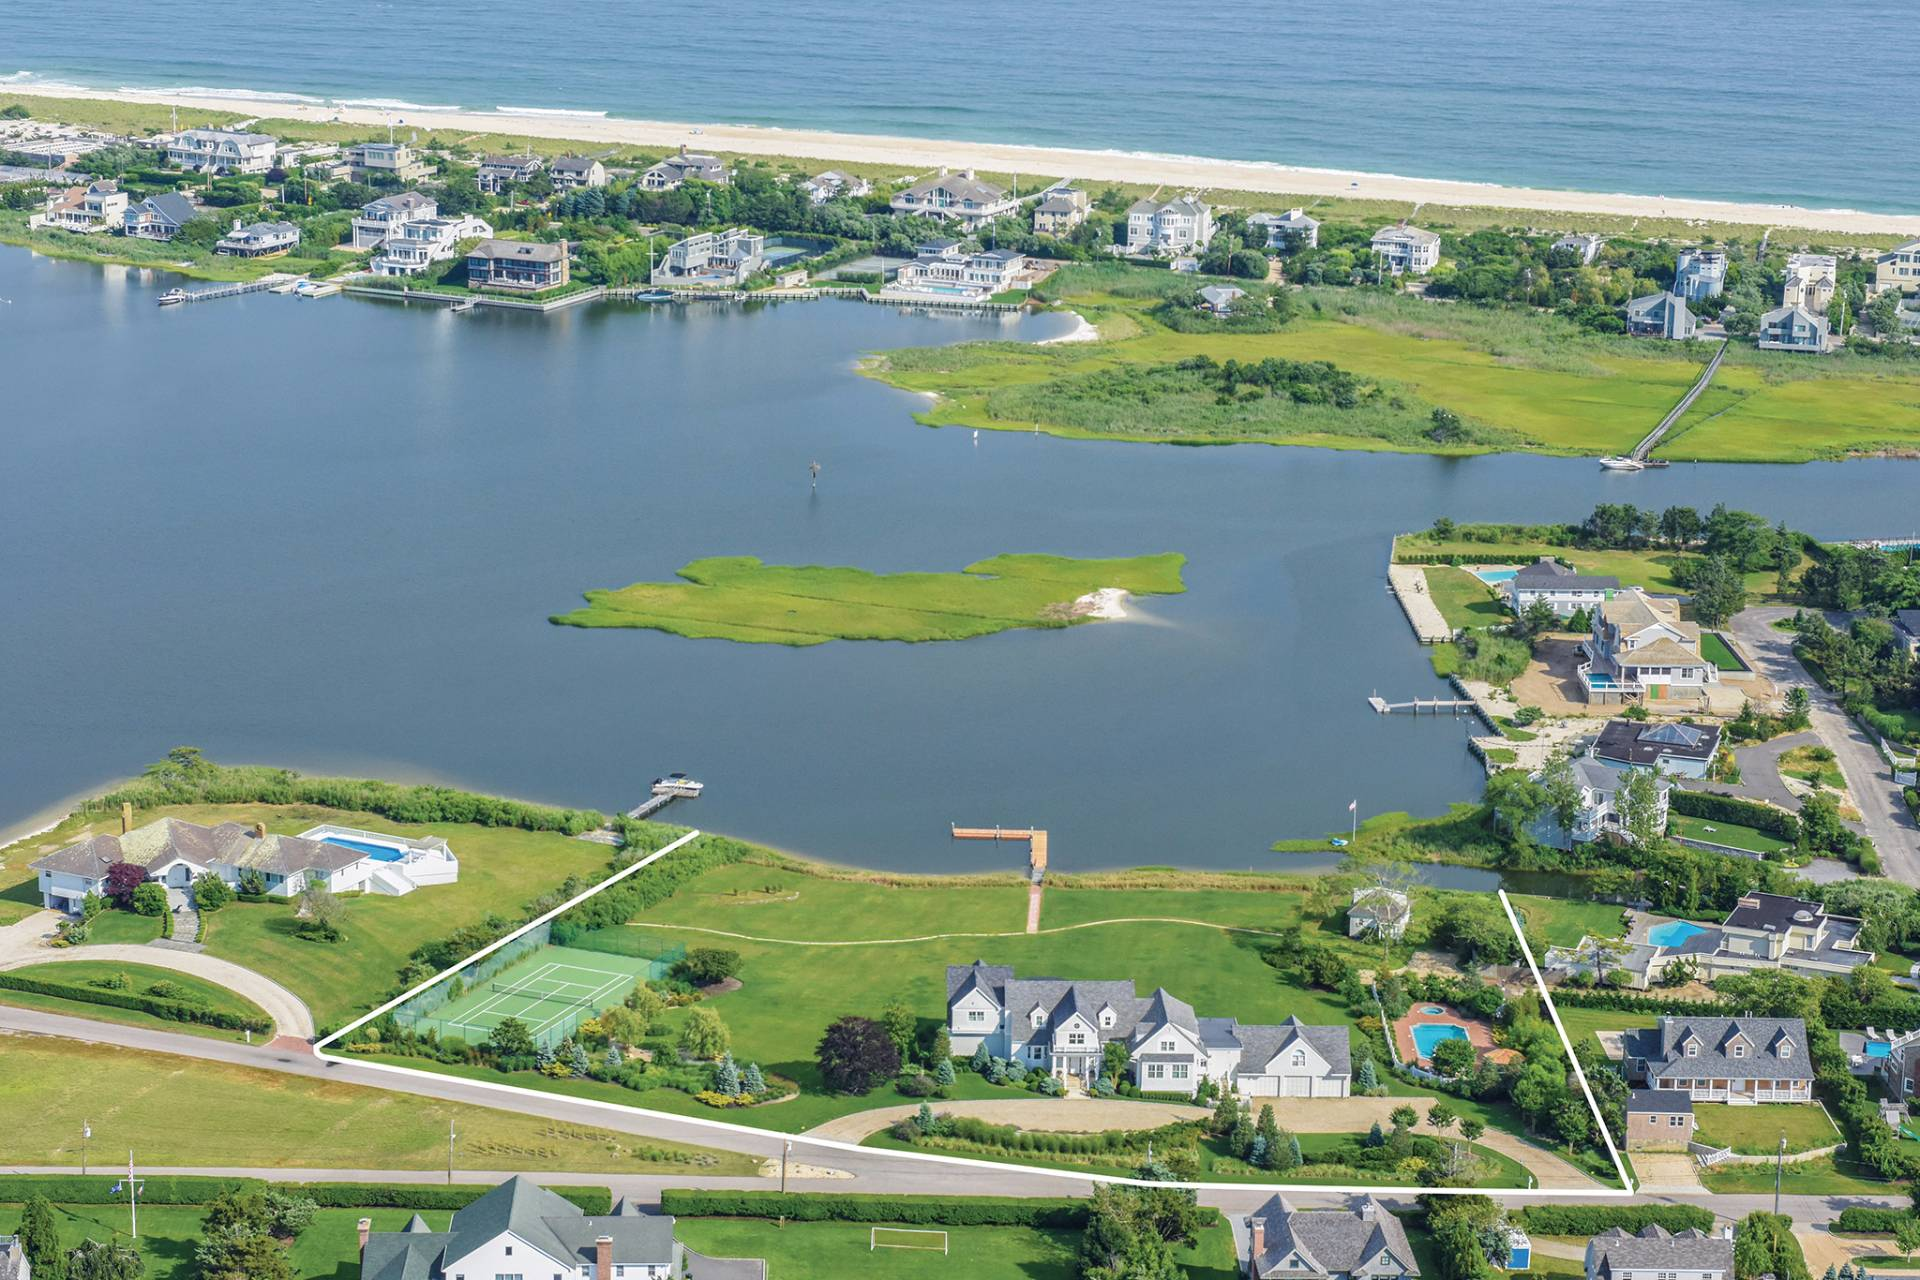 Single Family Home for Sale at Luxurious Waterfront Estate With Pool, Tennis & Guest House 37 Exchange Place, Westhampton Beach, New York